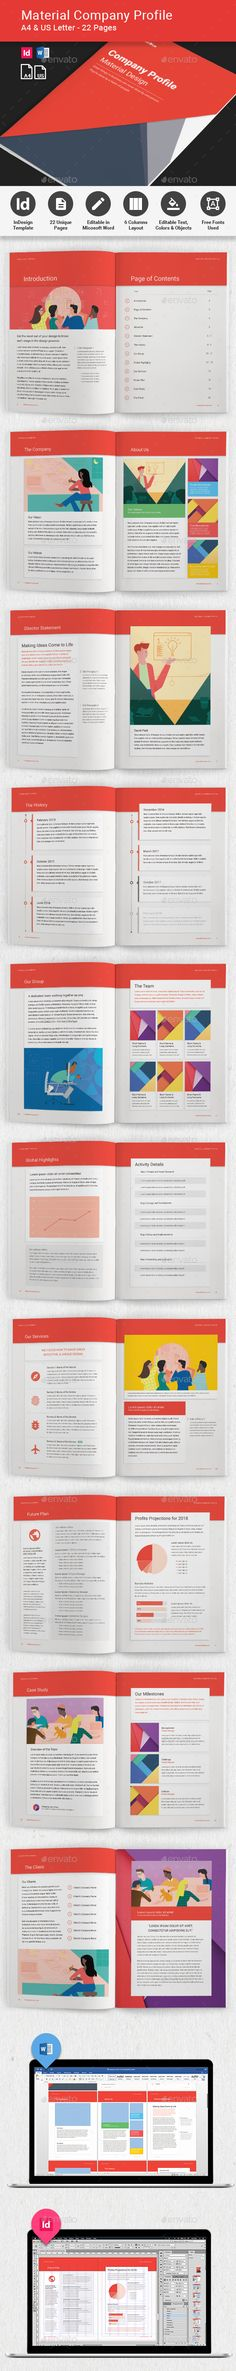 Company Profile - Material Design - Corporate Brochures Download here : https://graphicriver.net/item/company-profile-material-design/19697369?s_rank=23&ref=Al-fatih